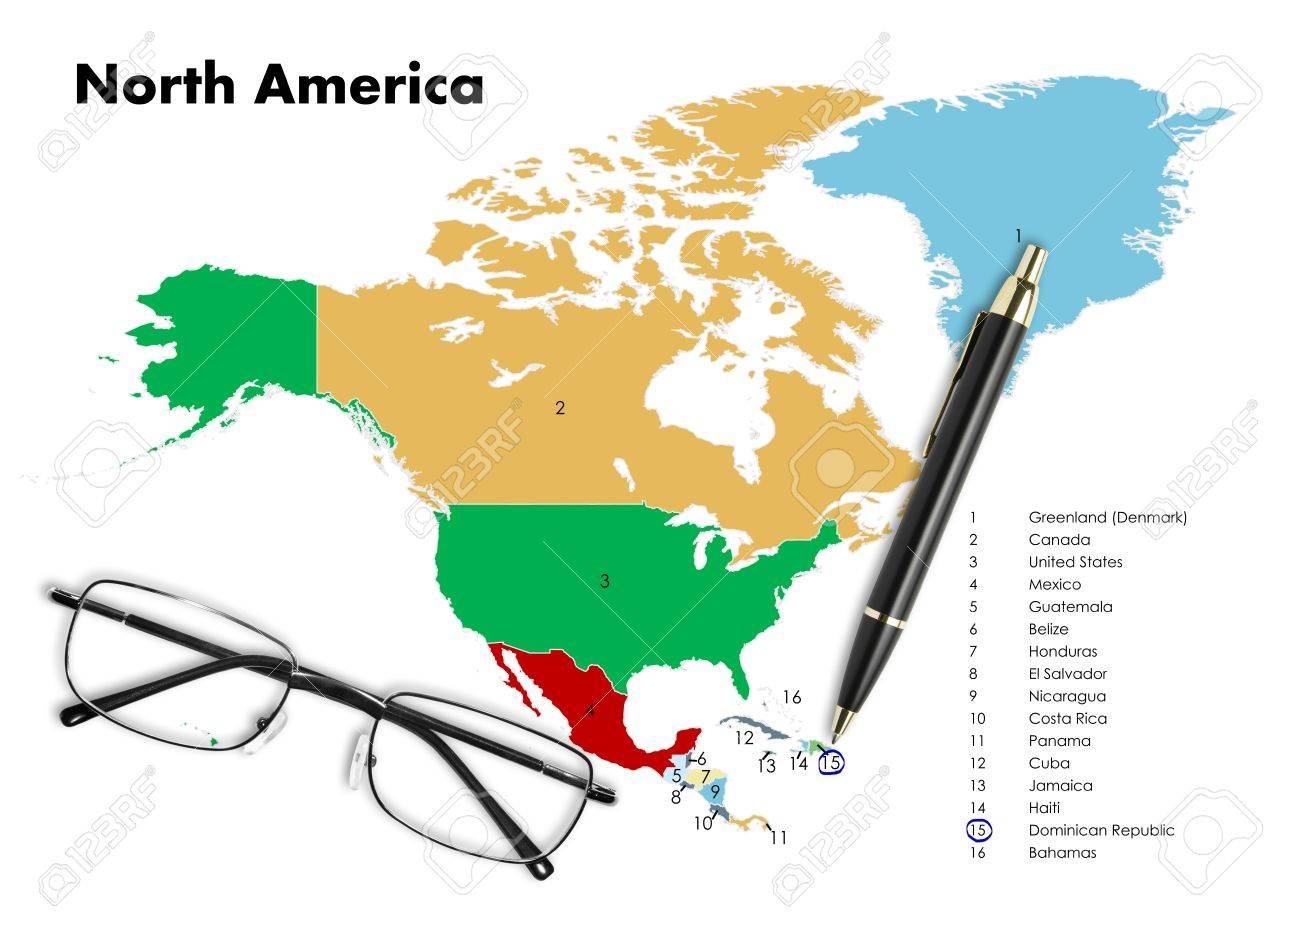 Dominican Republic On Haiti On North America Map With Pen - Map of united states and dominican republic